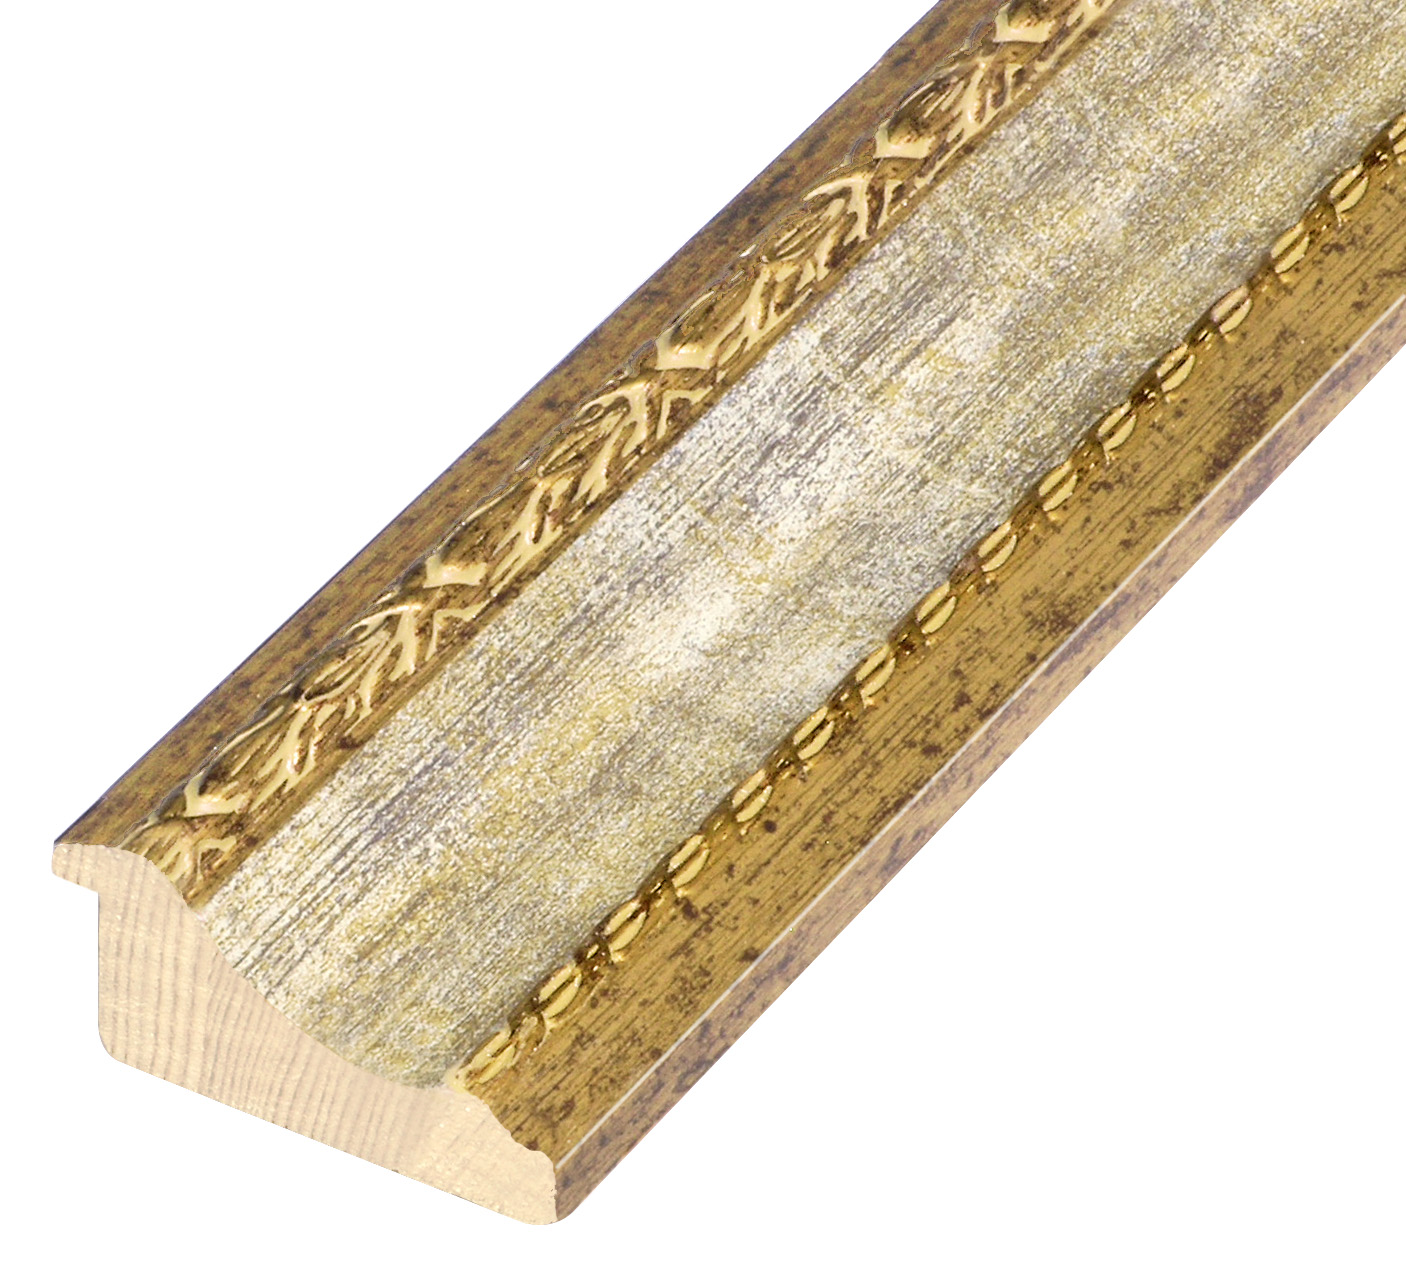 Moulding finger joint pine, width 68mm - gold, white band, decorations